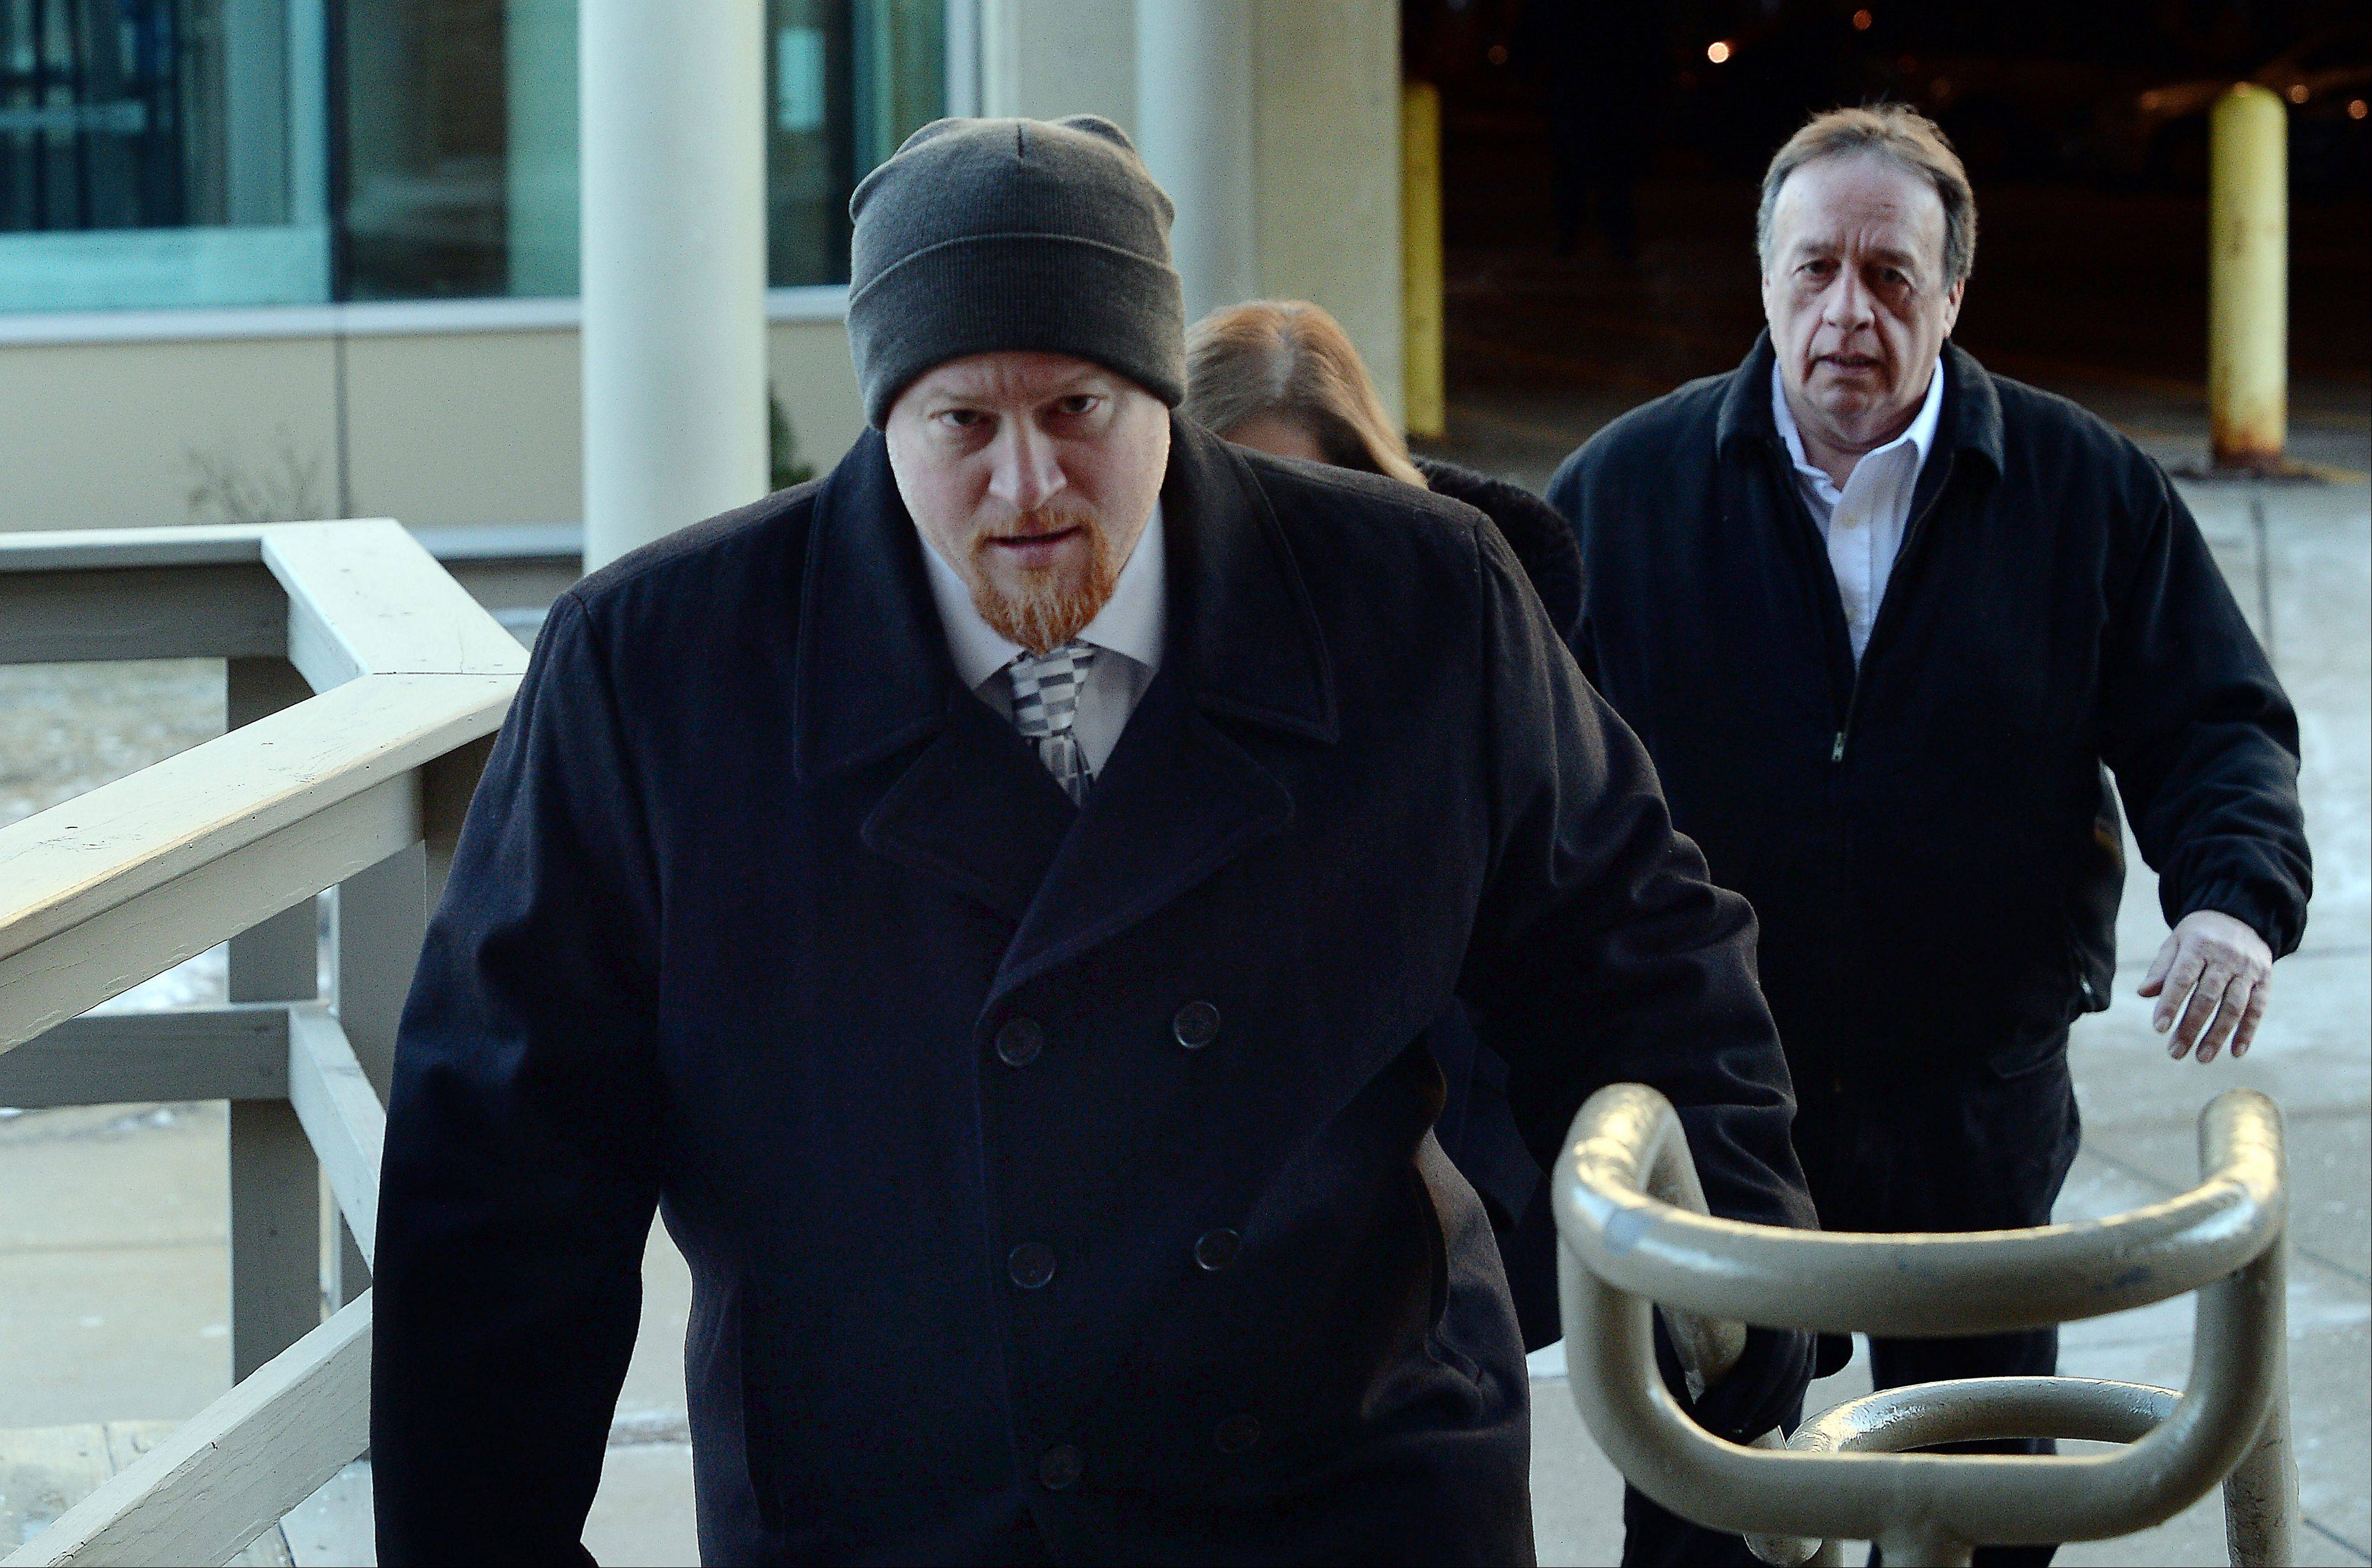 Former Maine West High School soccer coach Michael Divincenzo walks into the Cook County courthouse in Skokie, where a judge found him not guilty Wednesday of hazing-related charges.